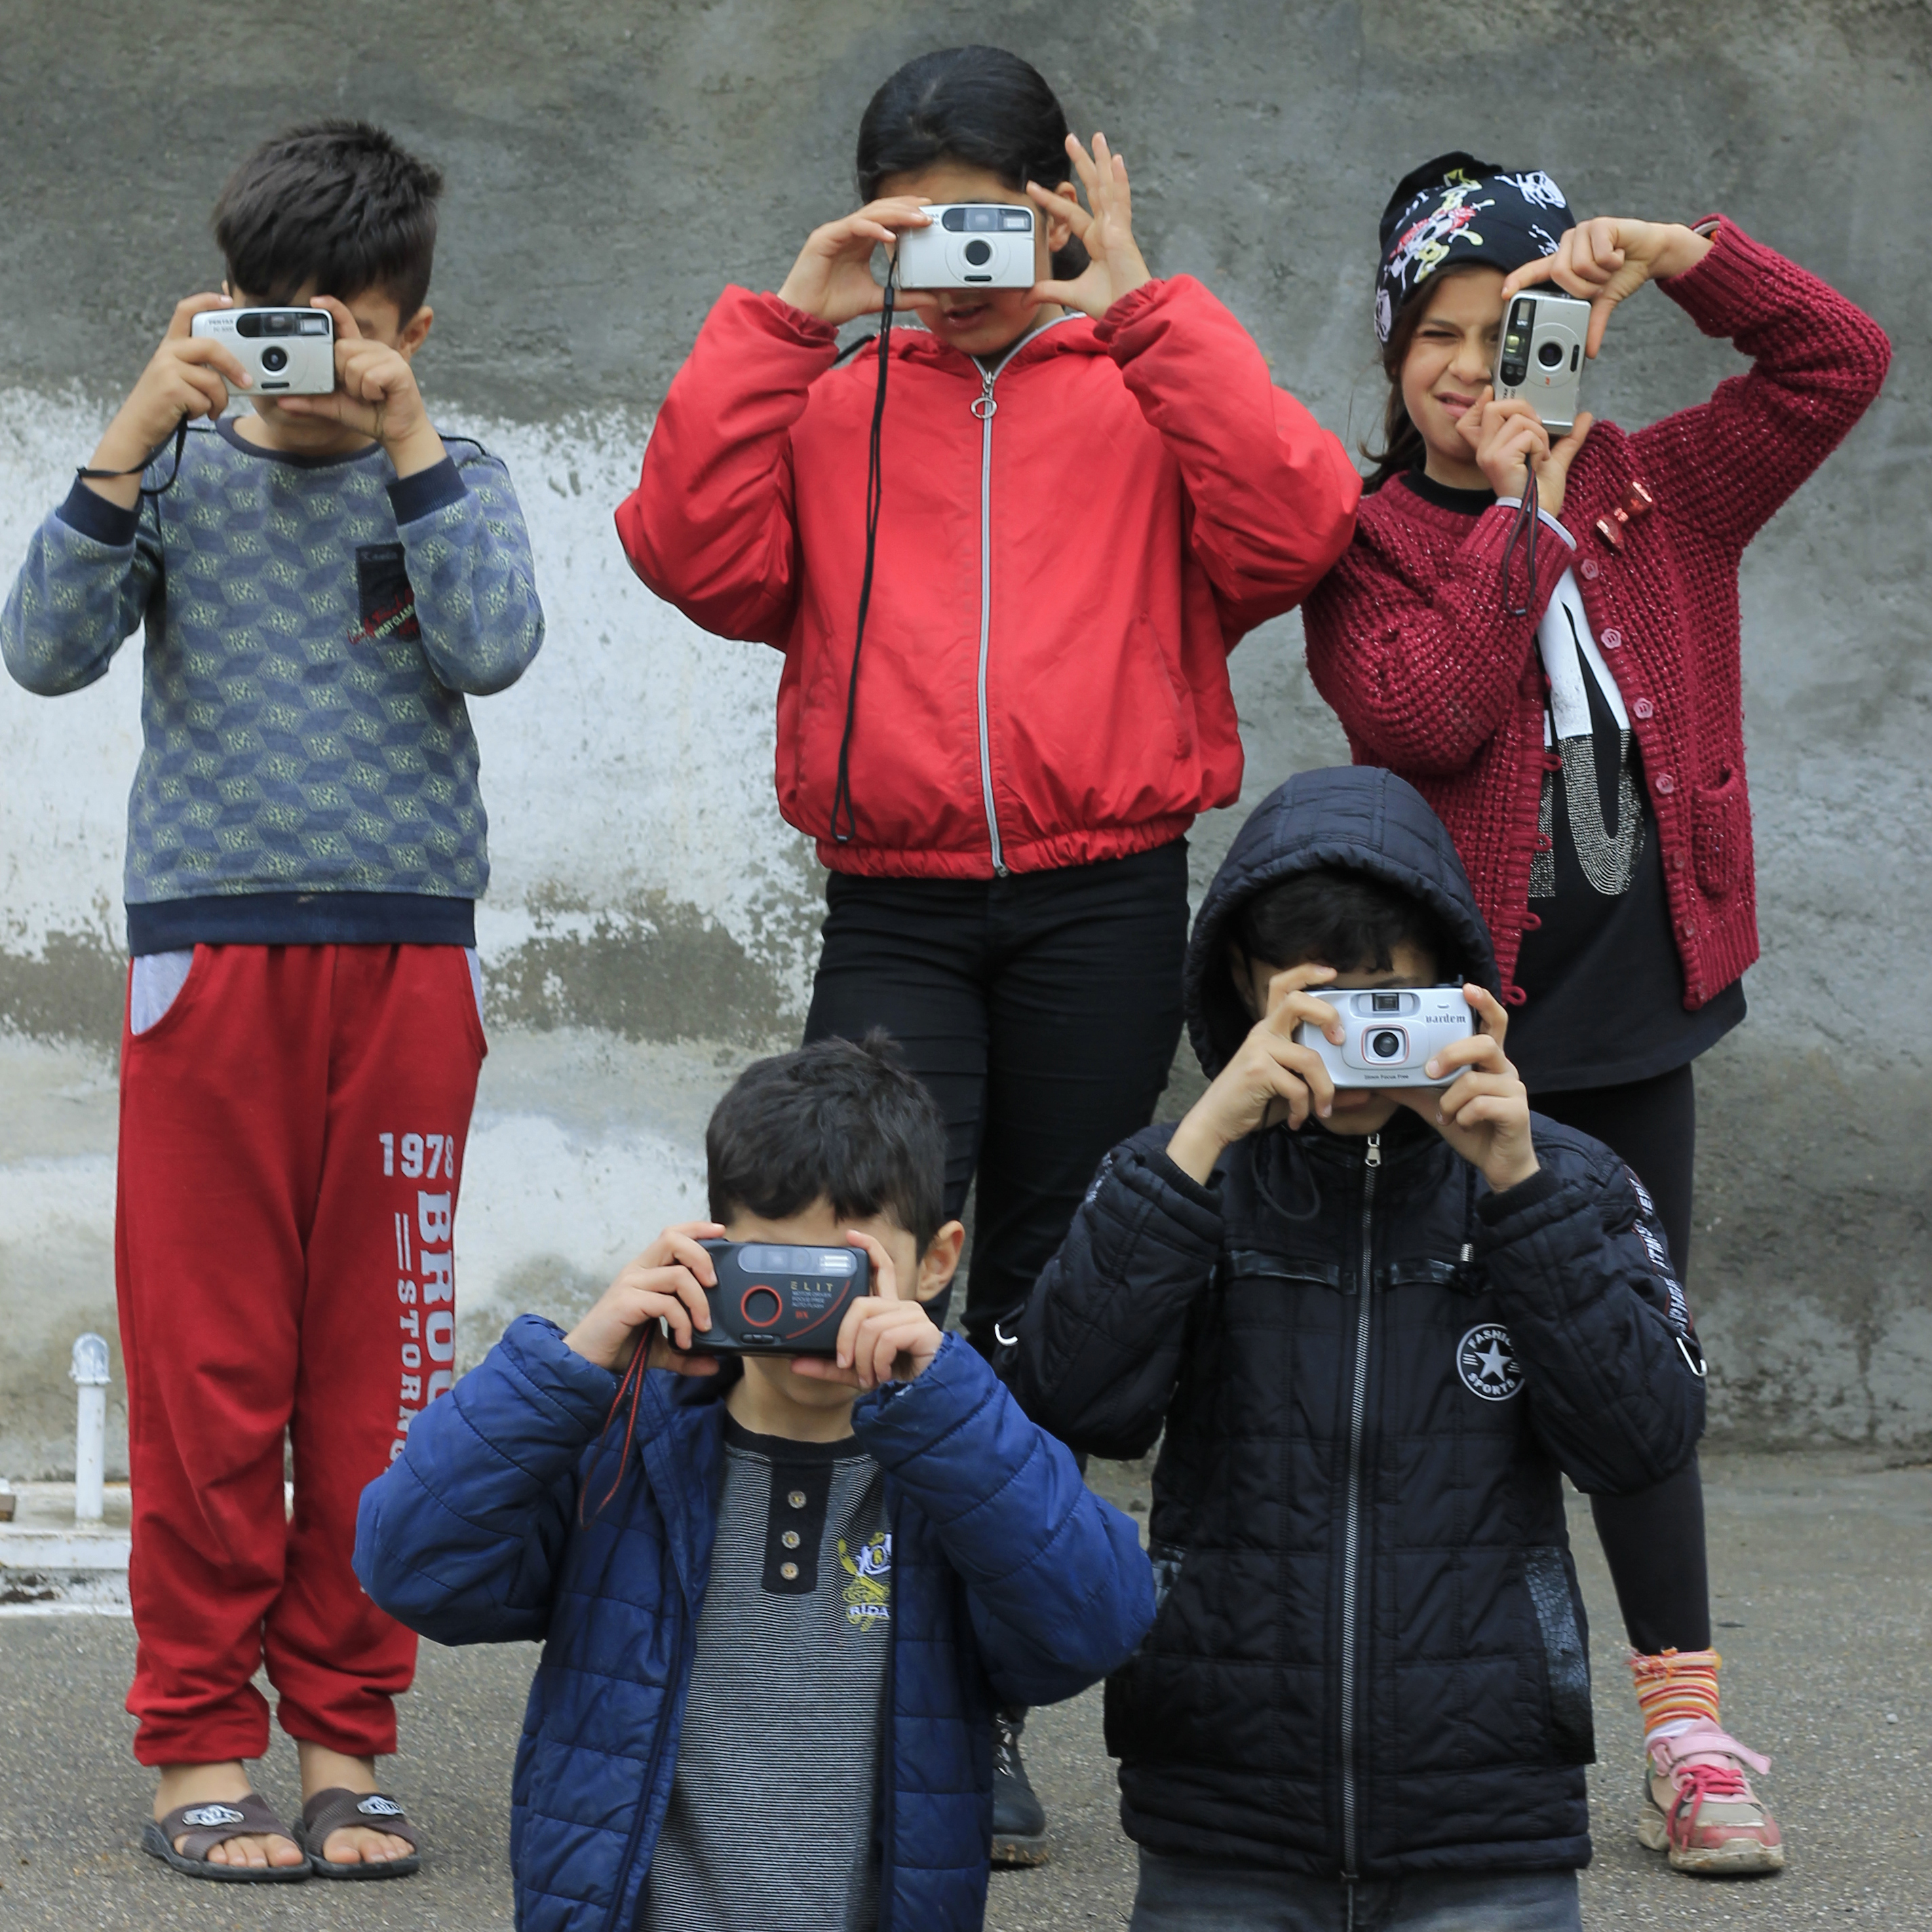 Participants of Sirkhane Darkroom posing with cameras during the workshop. ©Serbest Salih